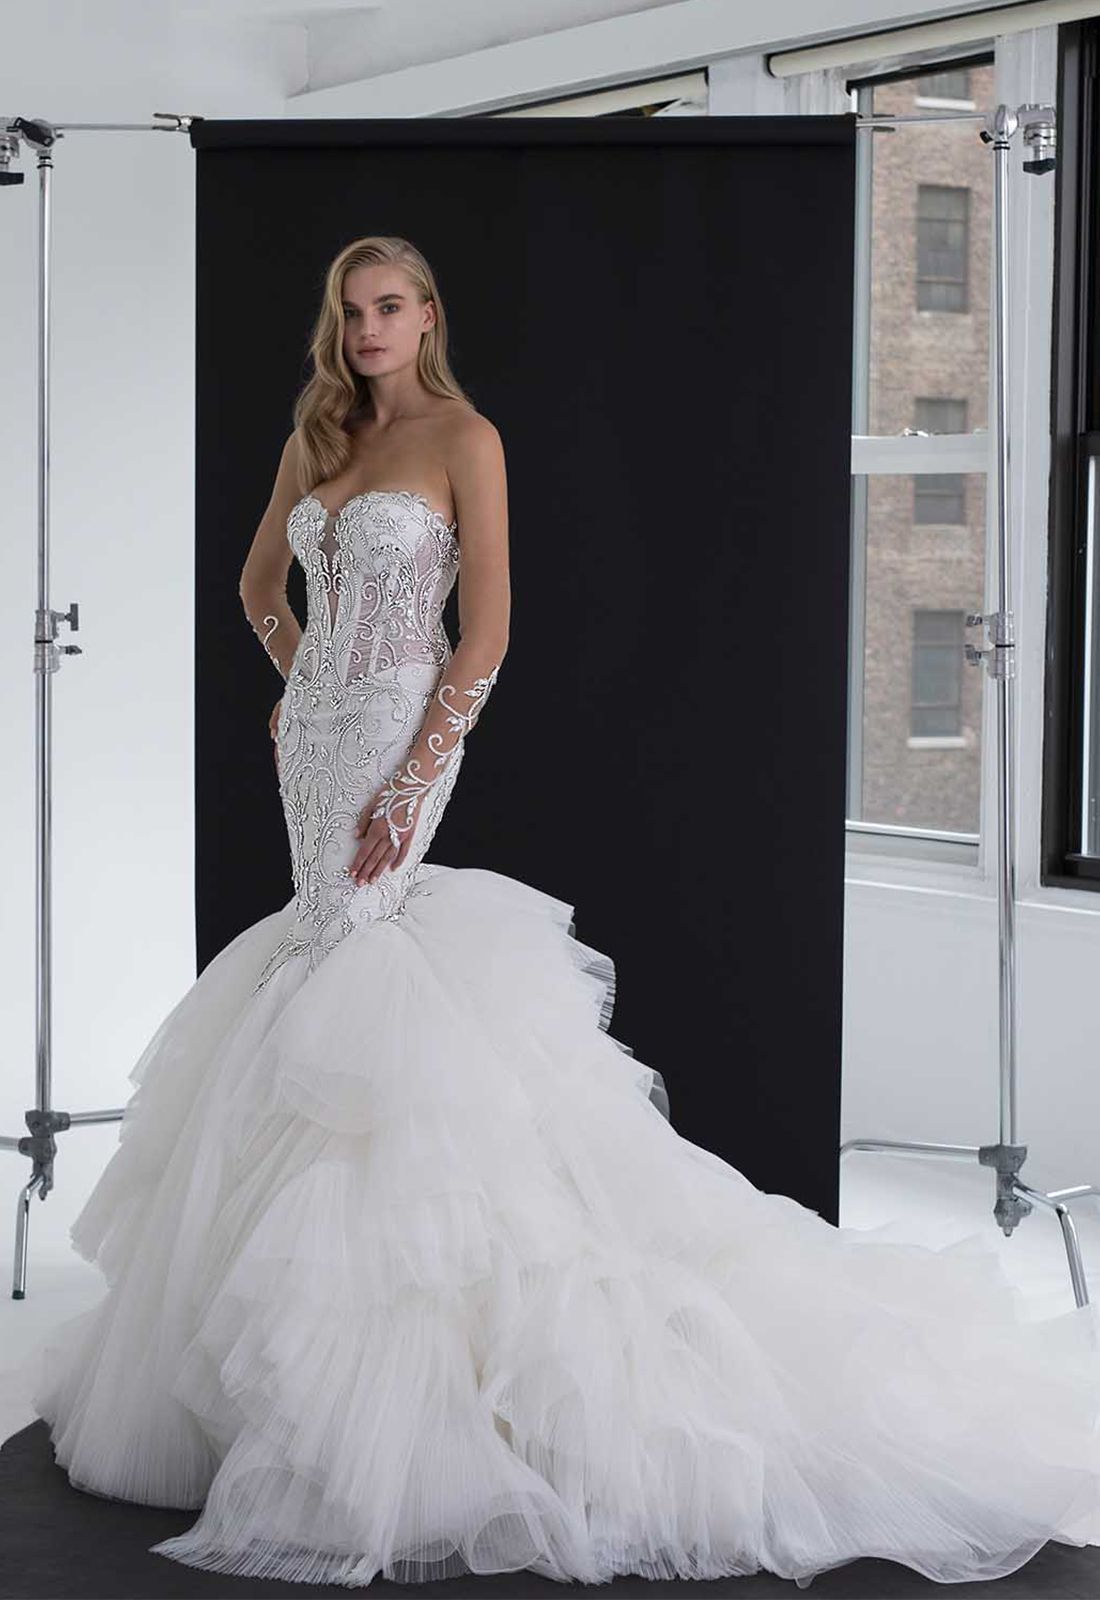 Pin On Willowy Wondrous Wedding Gowns